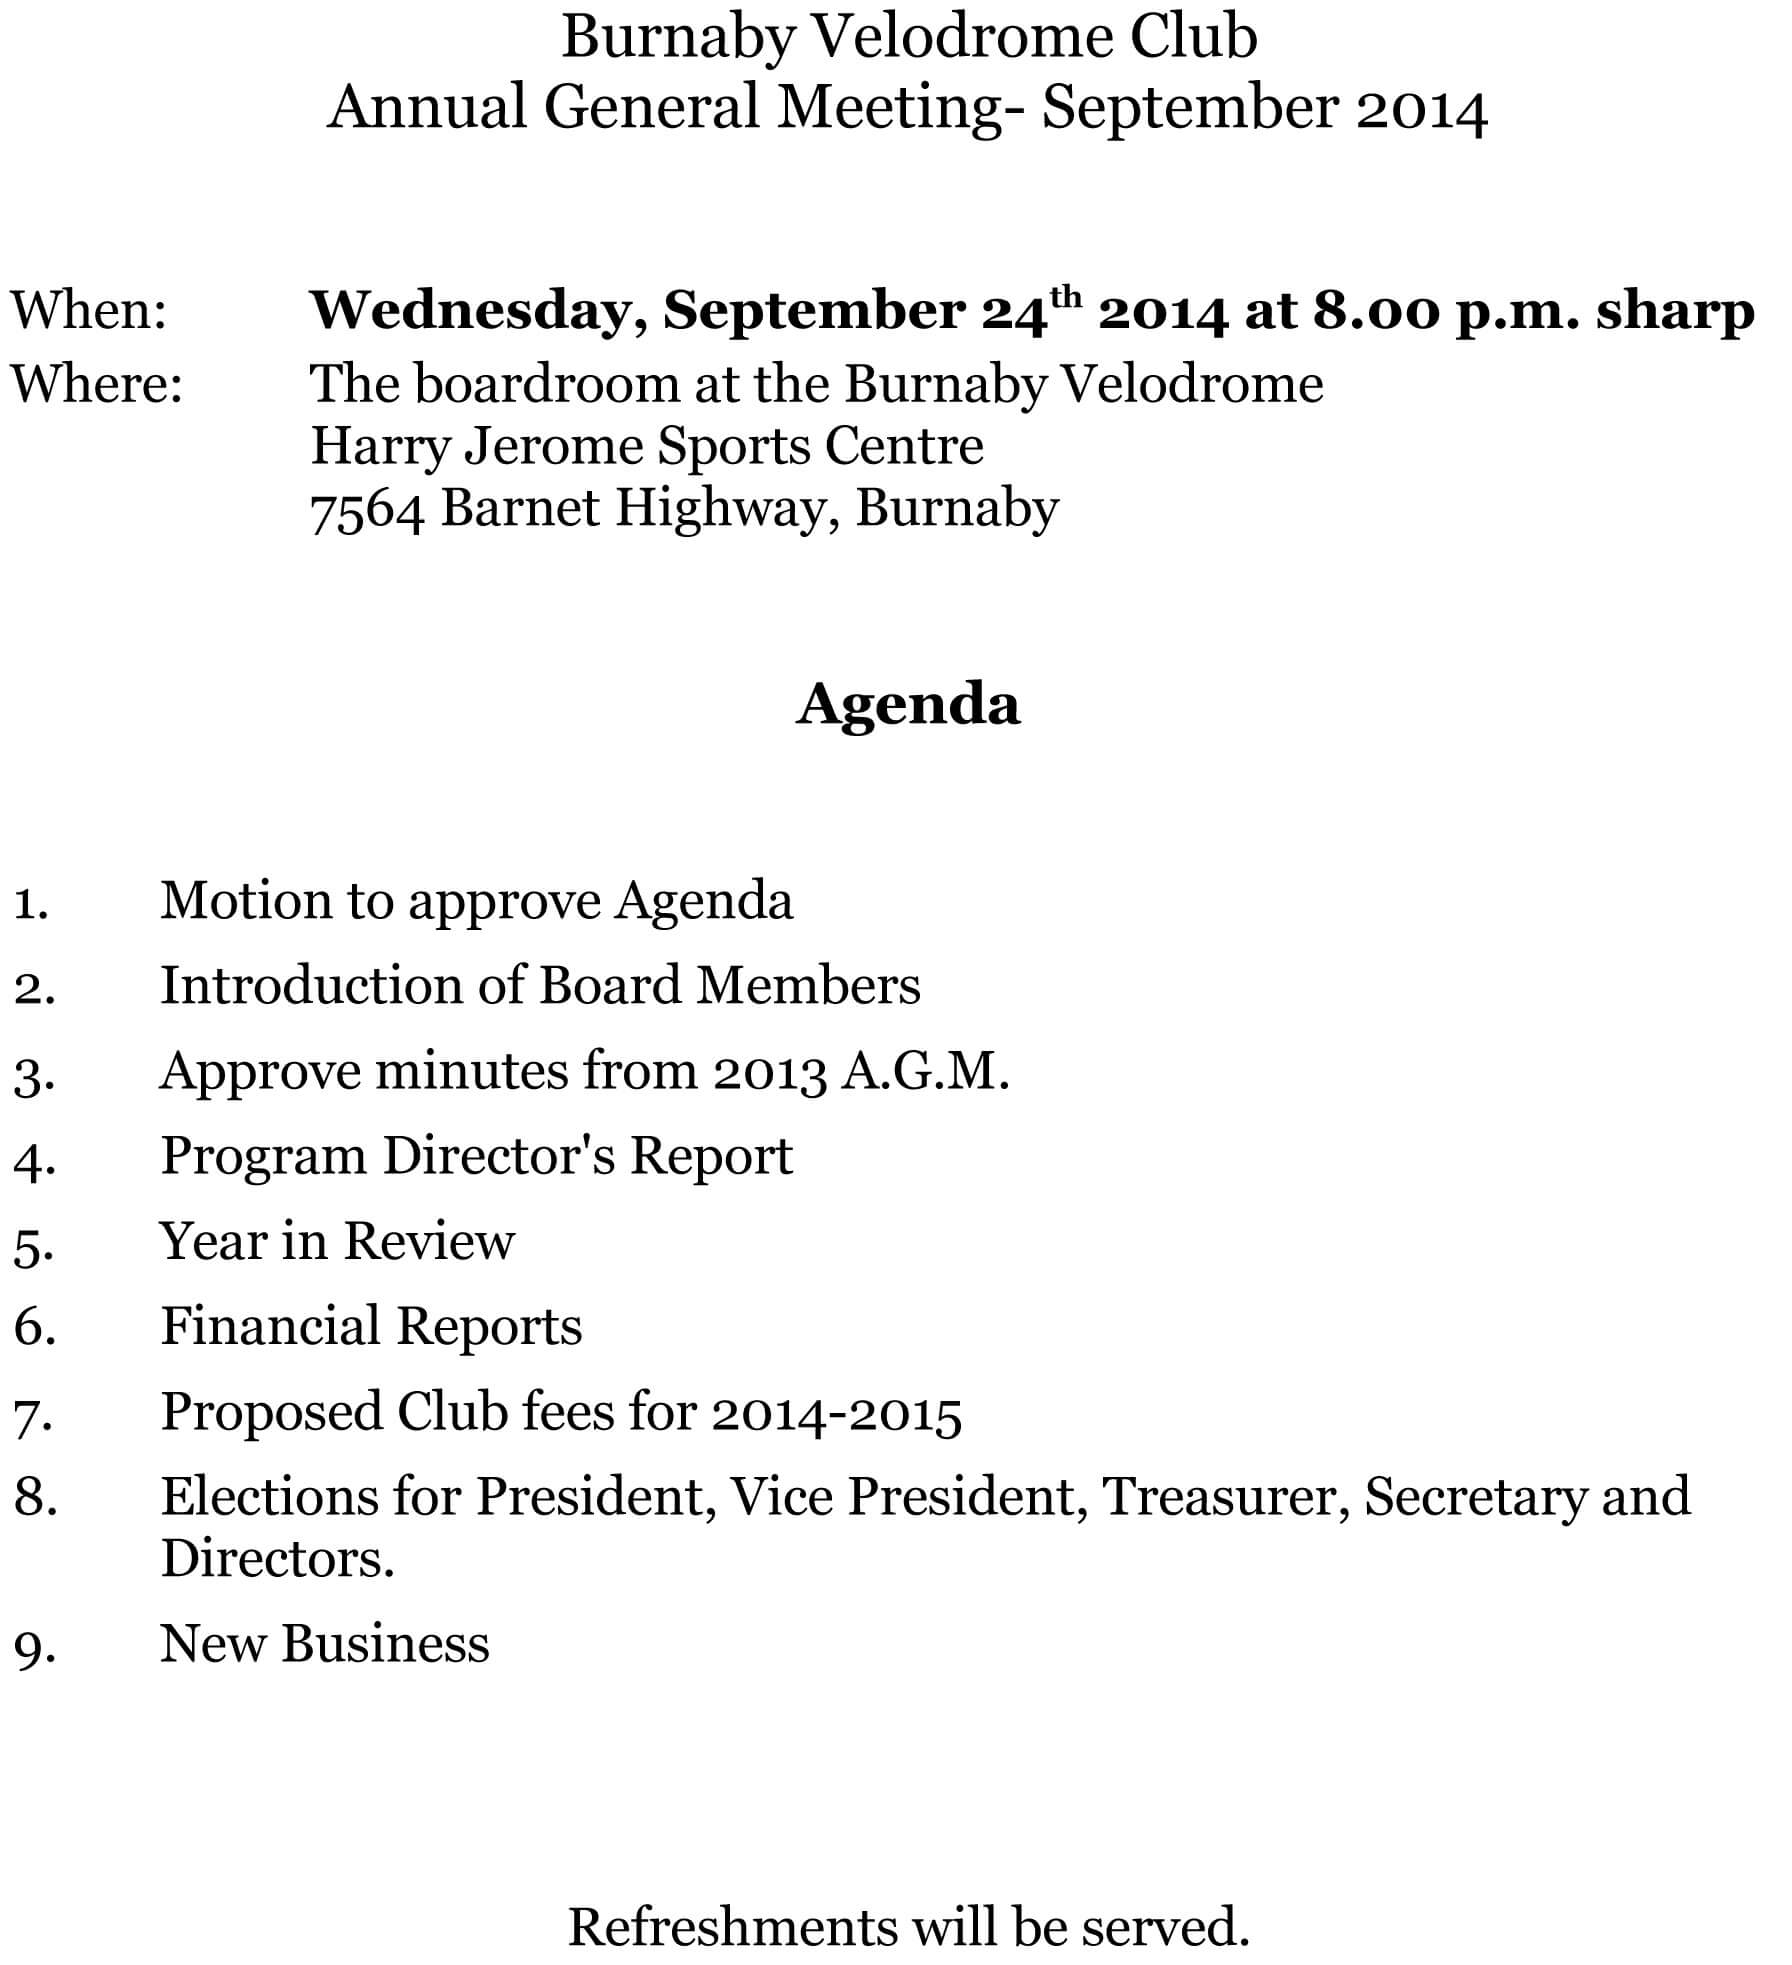 2014 Annual General Meeting - Burnaby Velodrome Club pertaining to Treasurer's Report Agm Template